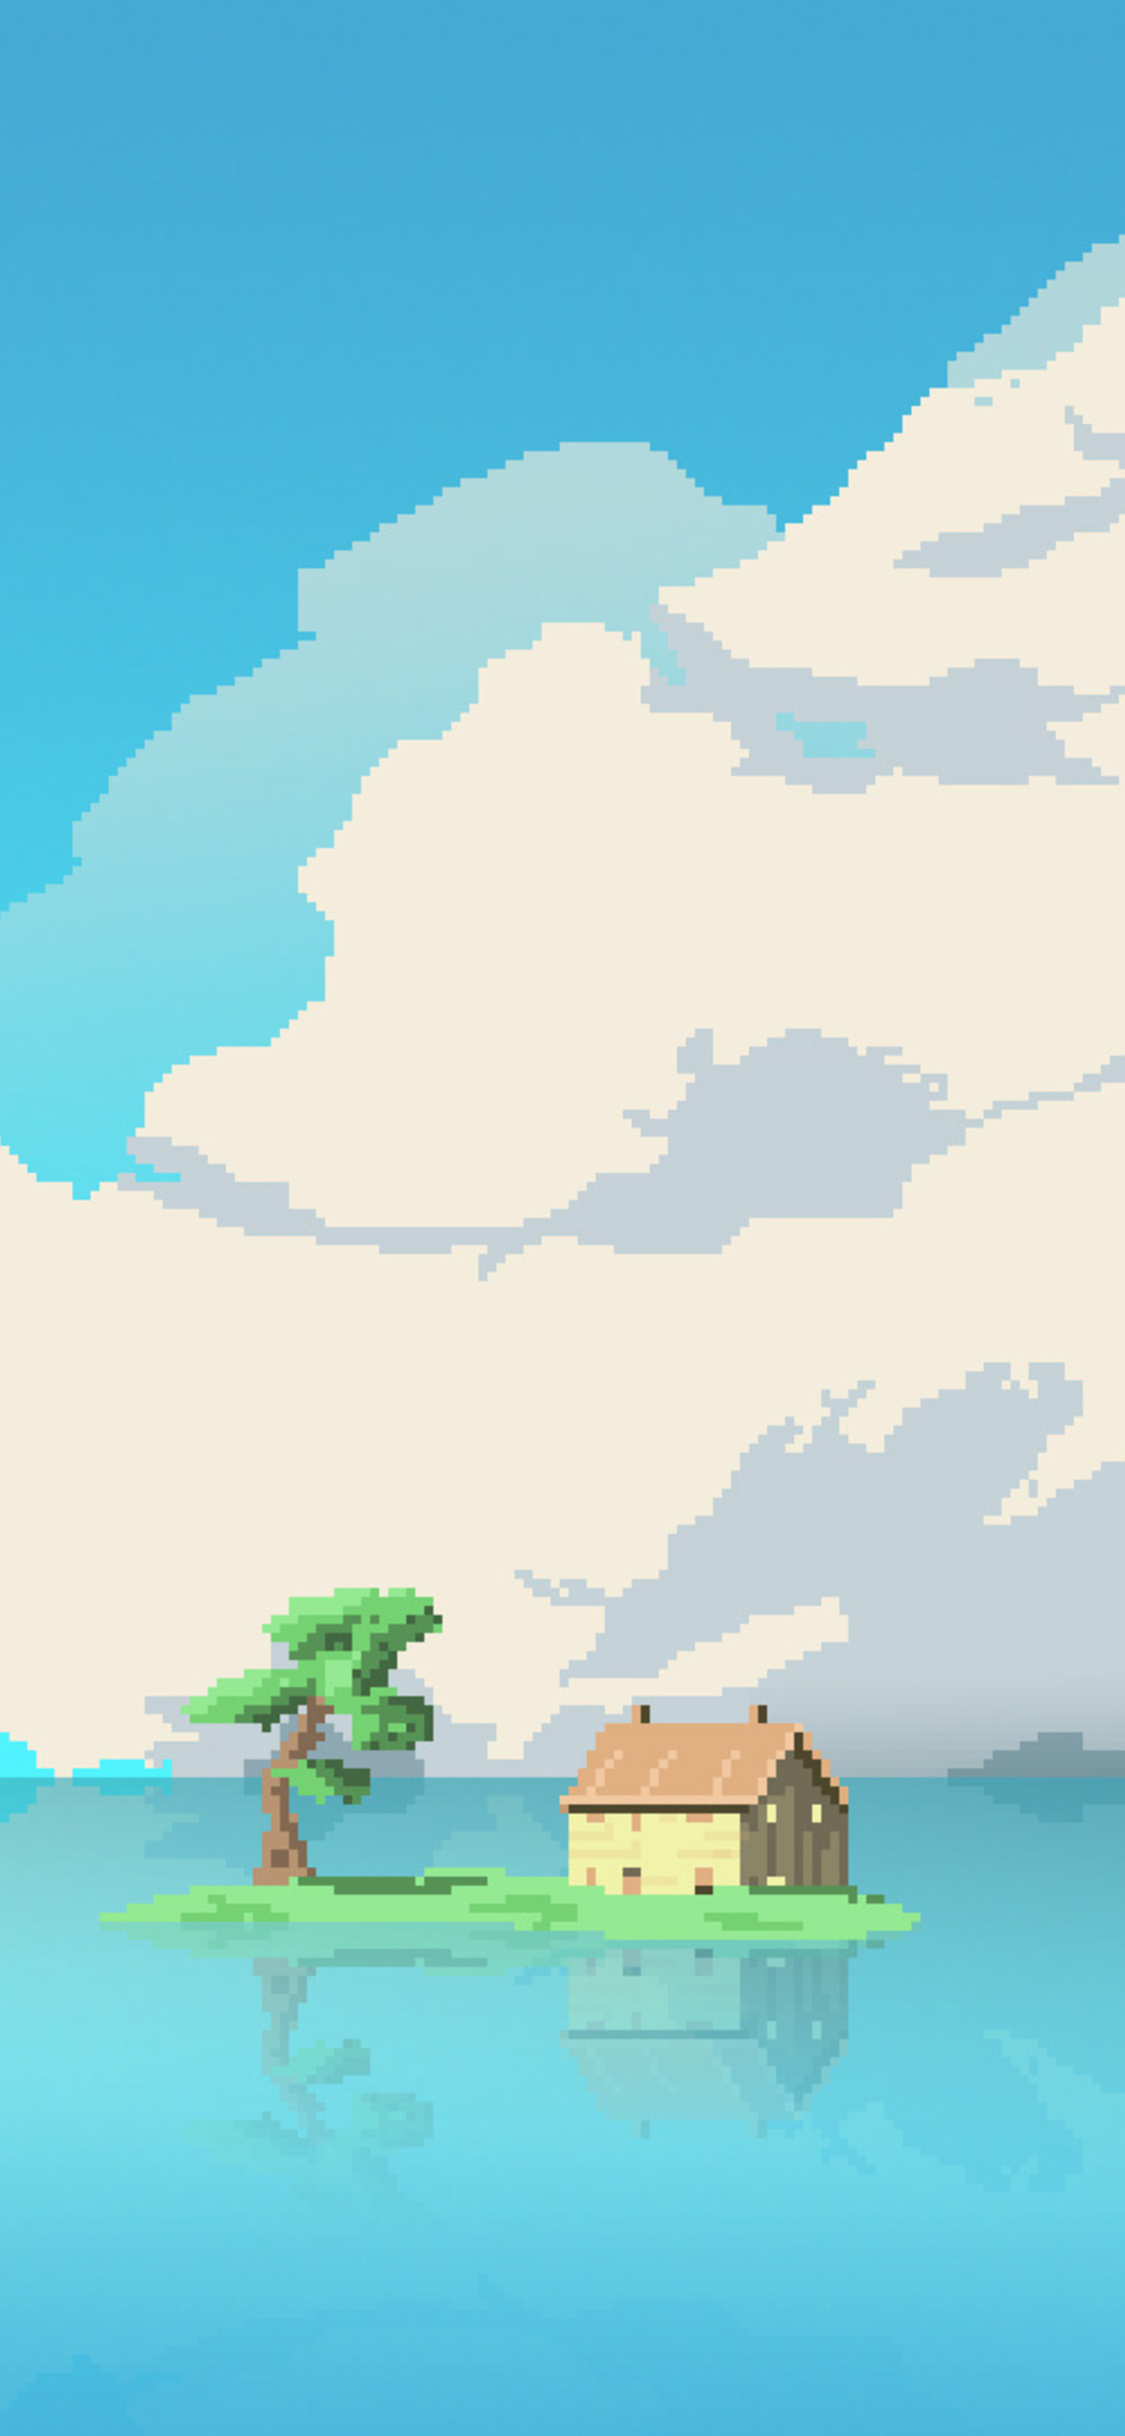 8-bit-artwork-house-island-in-middle-of-